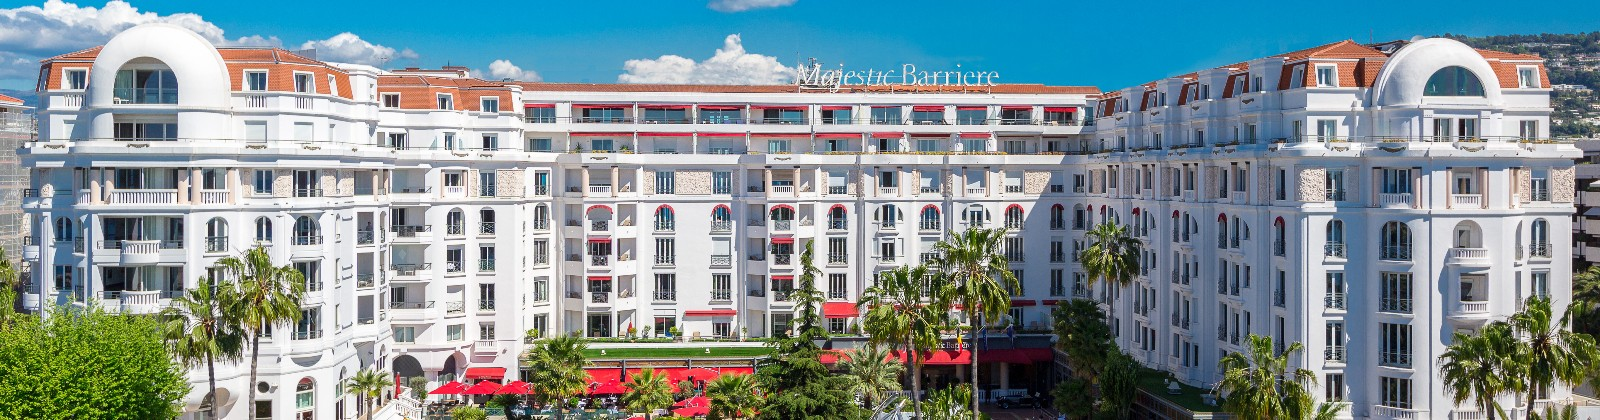 barriere majestic cannes olevene soiree